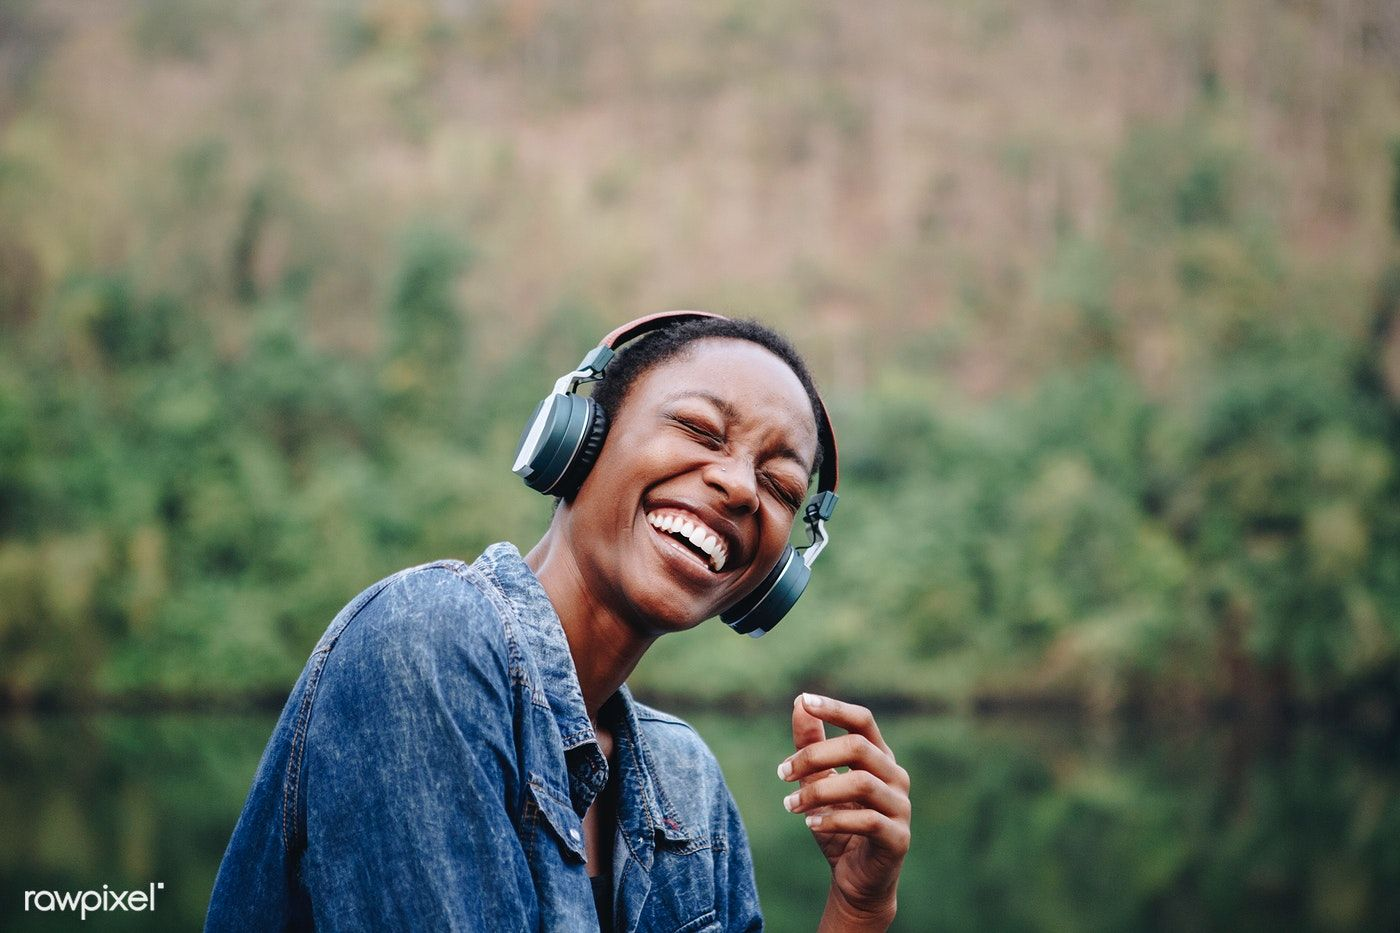 Download premium image of Woman listening to music in nature